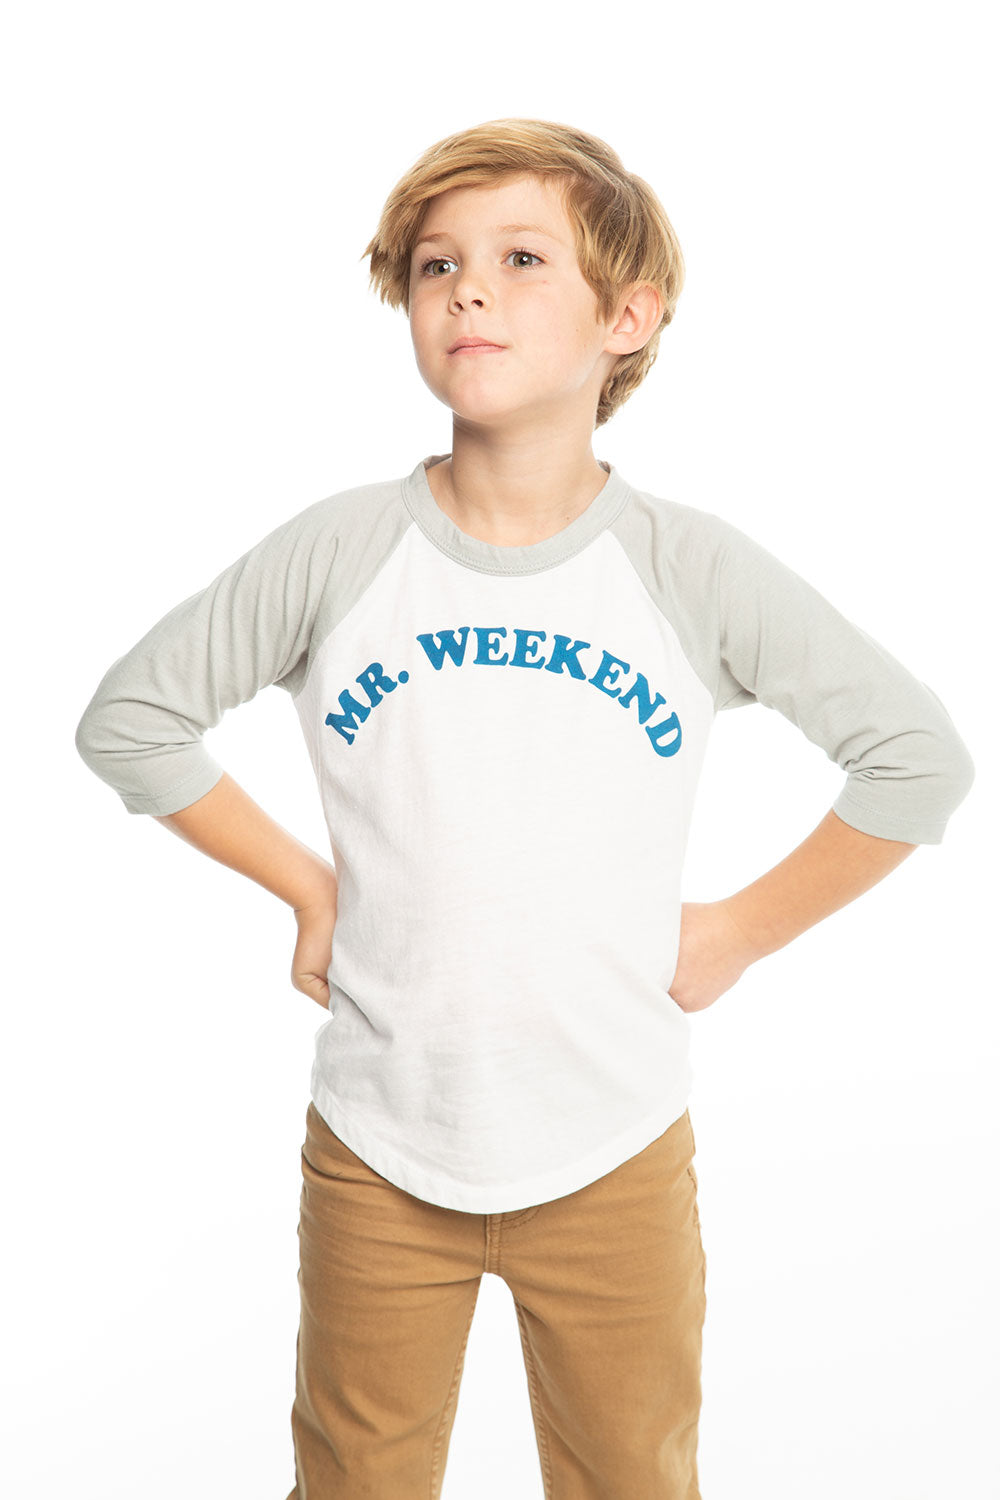 Mr. Weekend, BOYS, chaserbrand.com,chaser clothing,chaser apparel,chaser los angeles